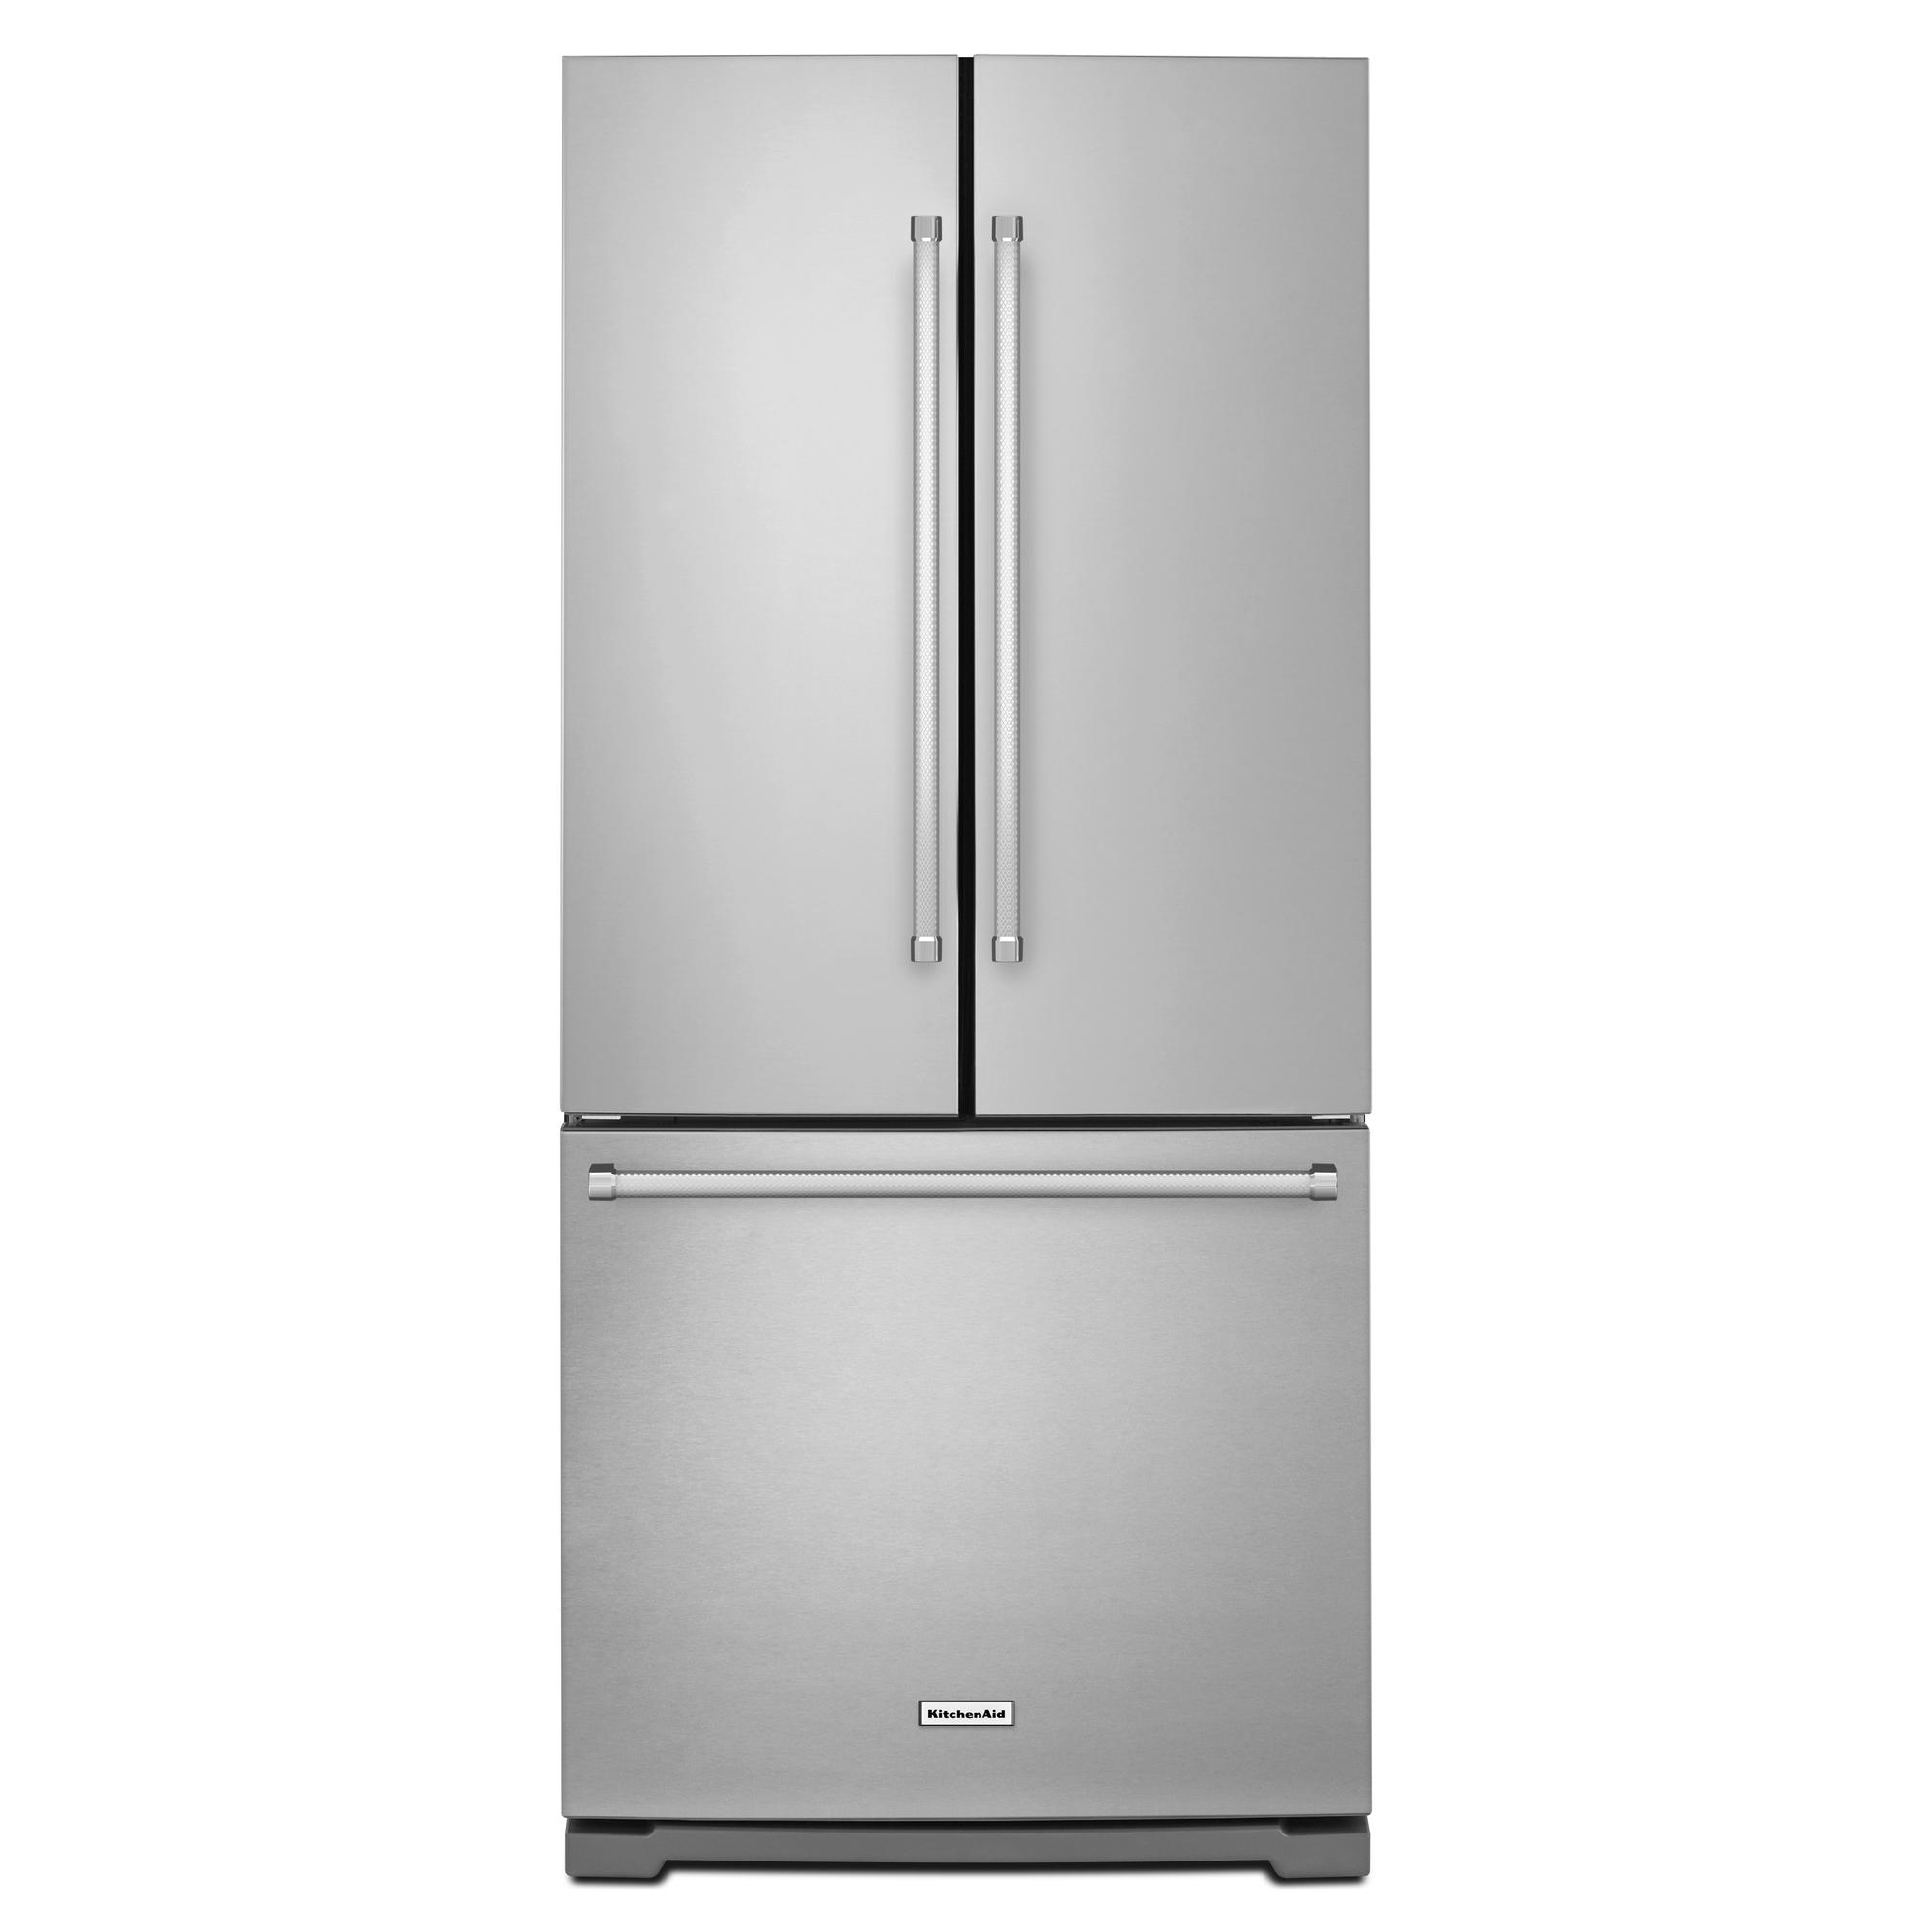 KRFF300ESS-20-cu-ft-French-Door-Refrigerator-Stainless-Steel